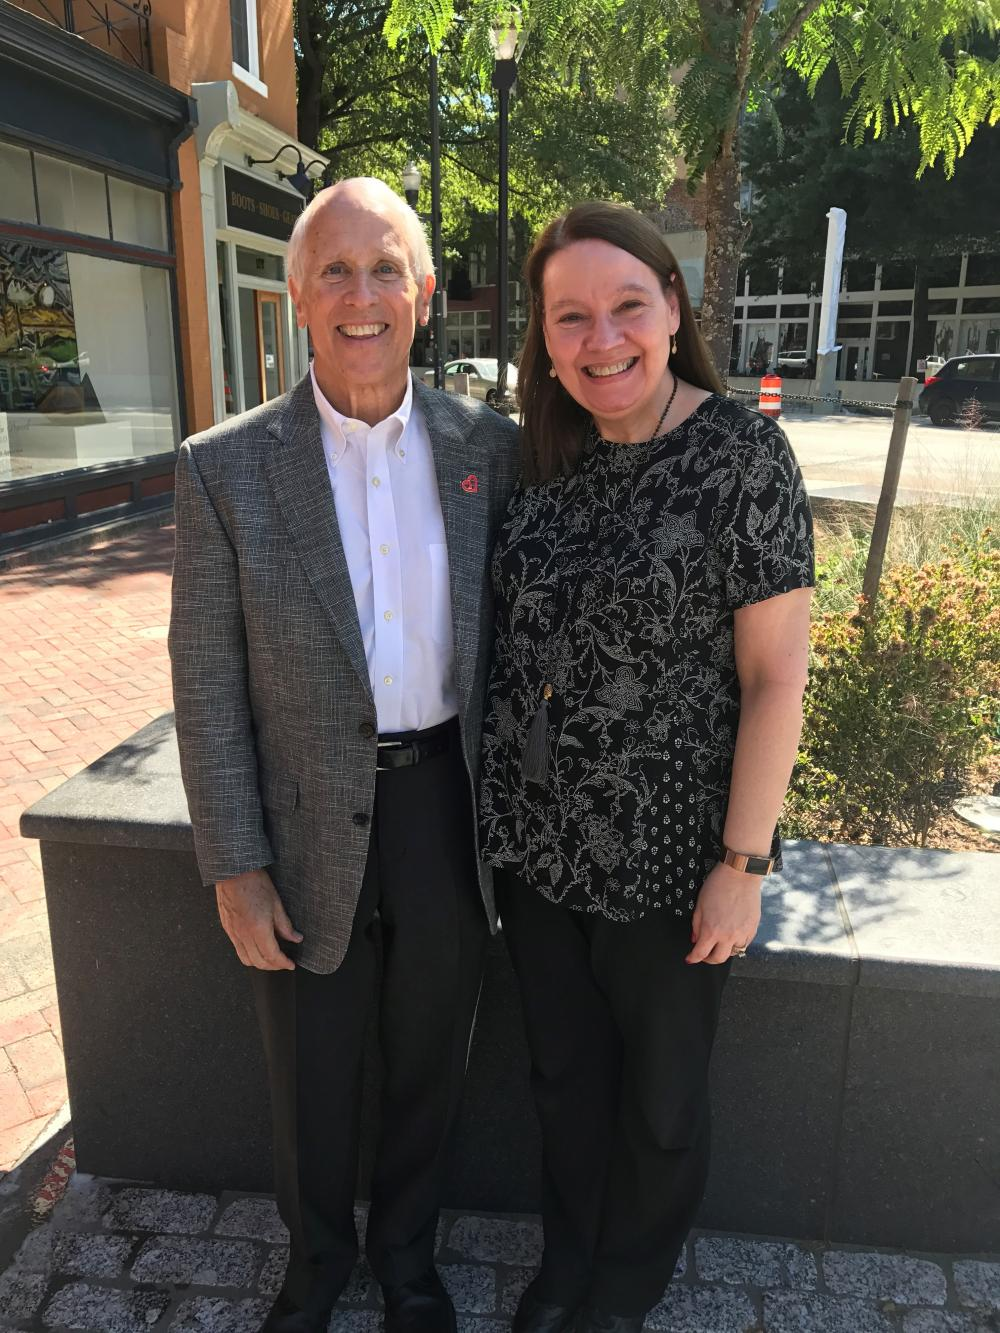 Bob Hershberger stands with Mary Ann Peberdy, M.D., director of VCU Health's Advanced Resuscitation, Cooling Therapeutics and Intensive Care (ARCTIC) post-cardiac arrest program. Dr. Peberdy treated Bob after he suffered a cardiac arrest in Williamsburg.